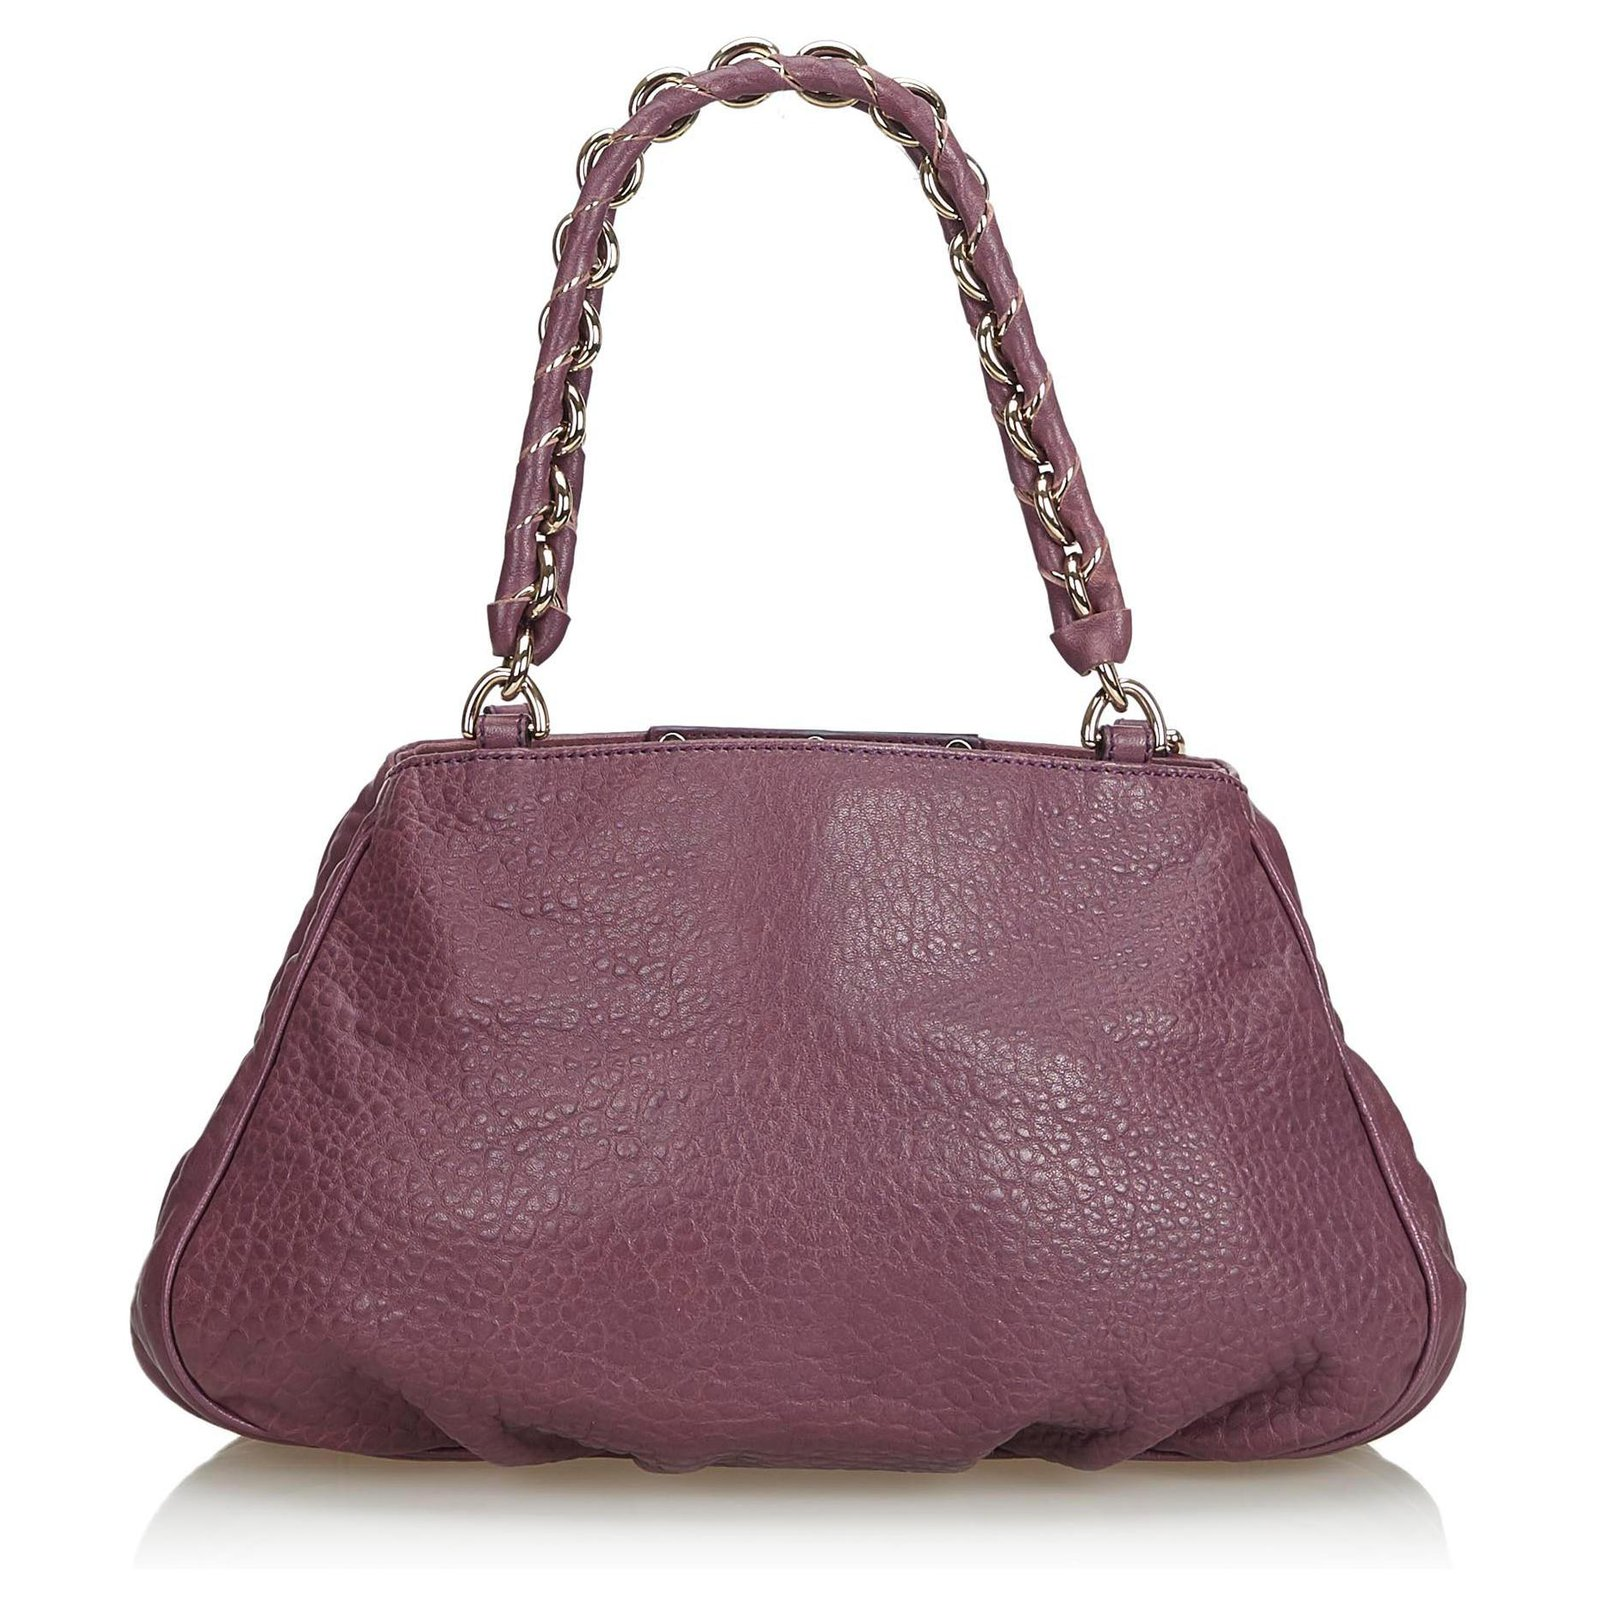 4213732239 Fendi Fendi Purple Leather Mia Shoulder Bag Handbags Leather,Other,Metal  Purple ref.129961 - Joli Closet